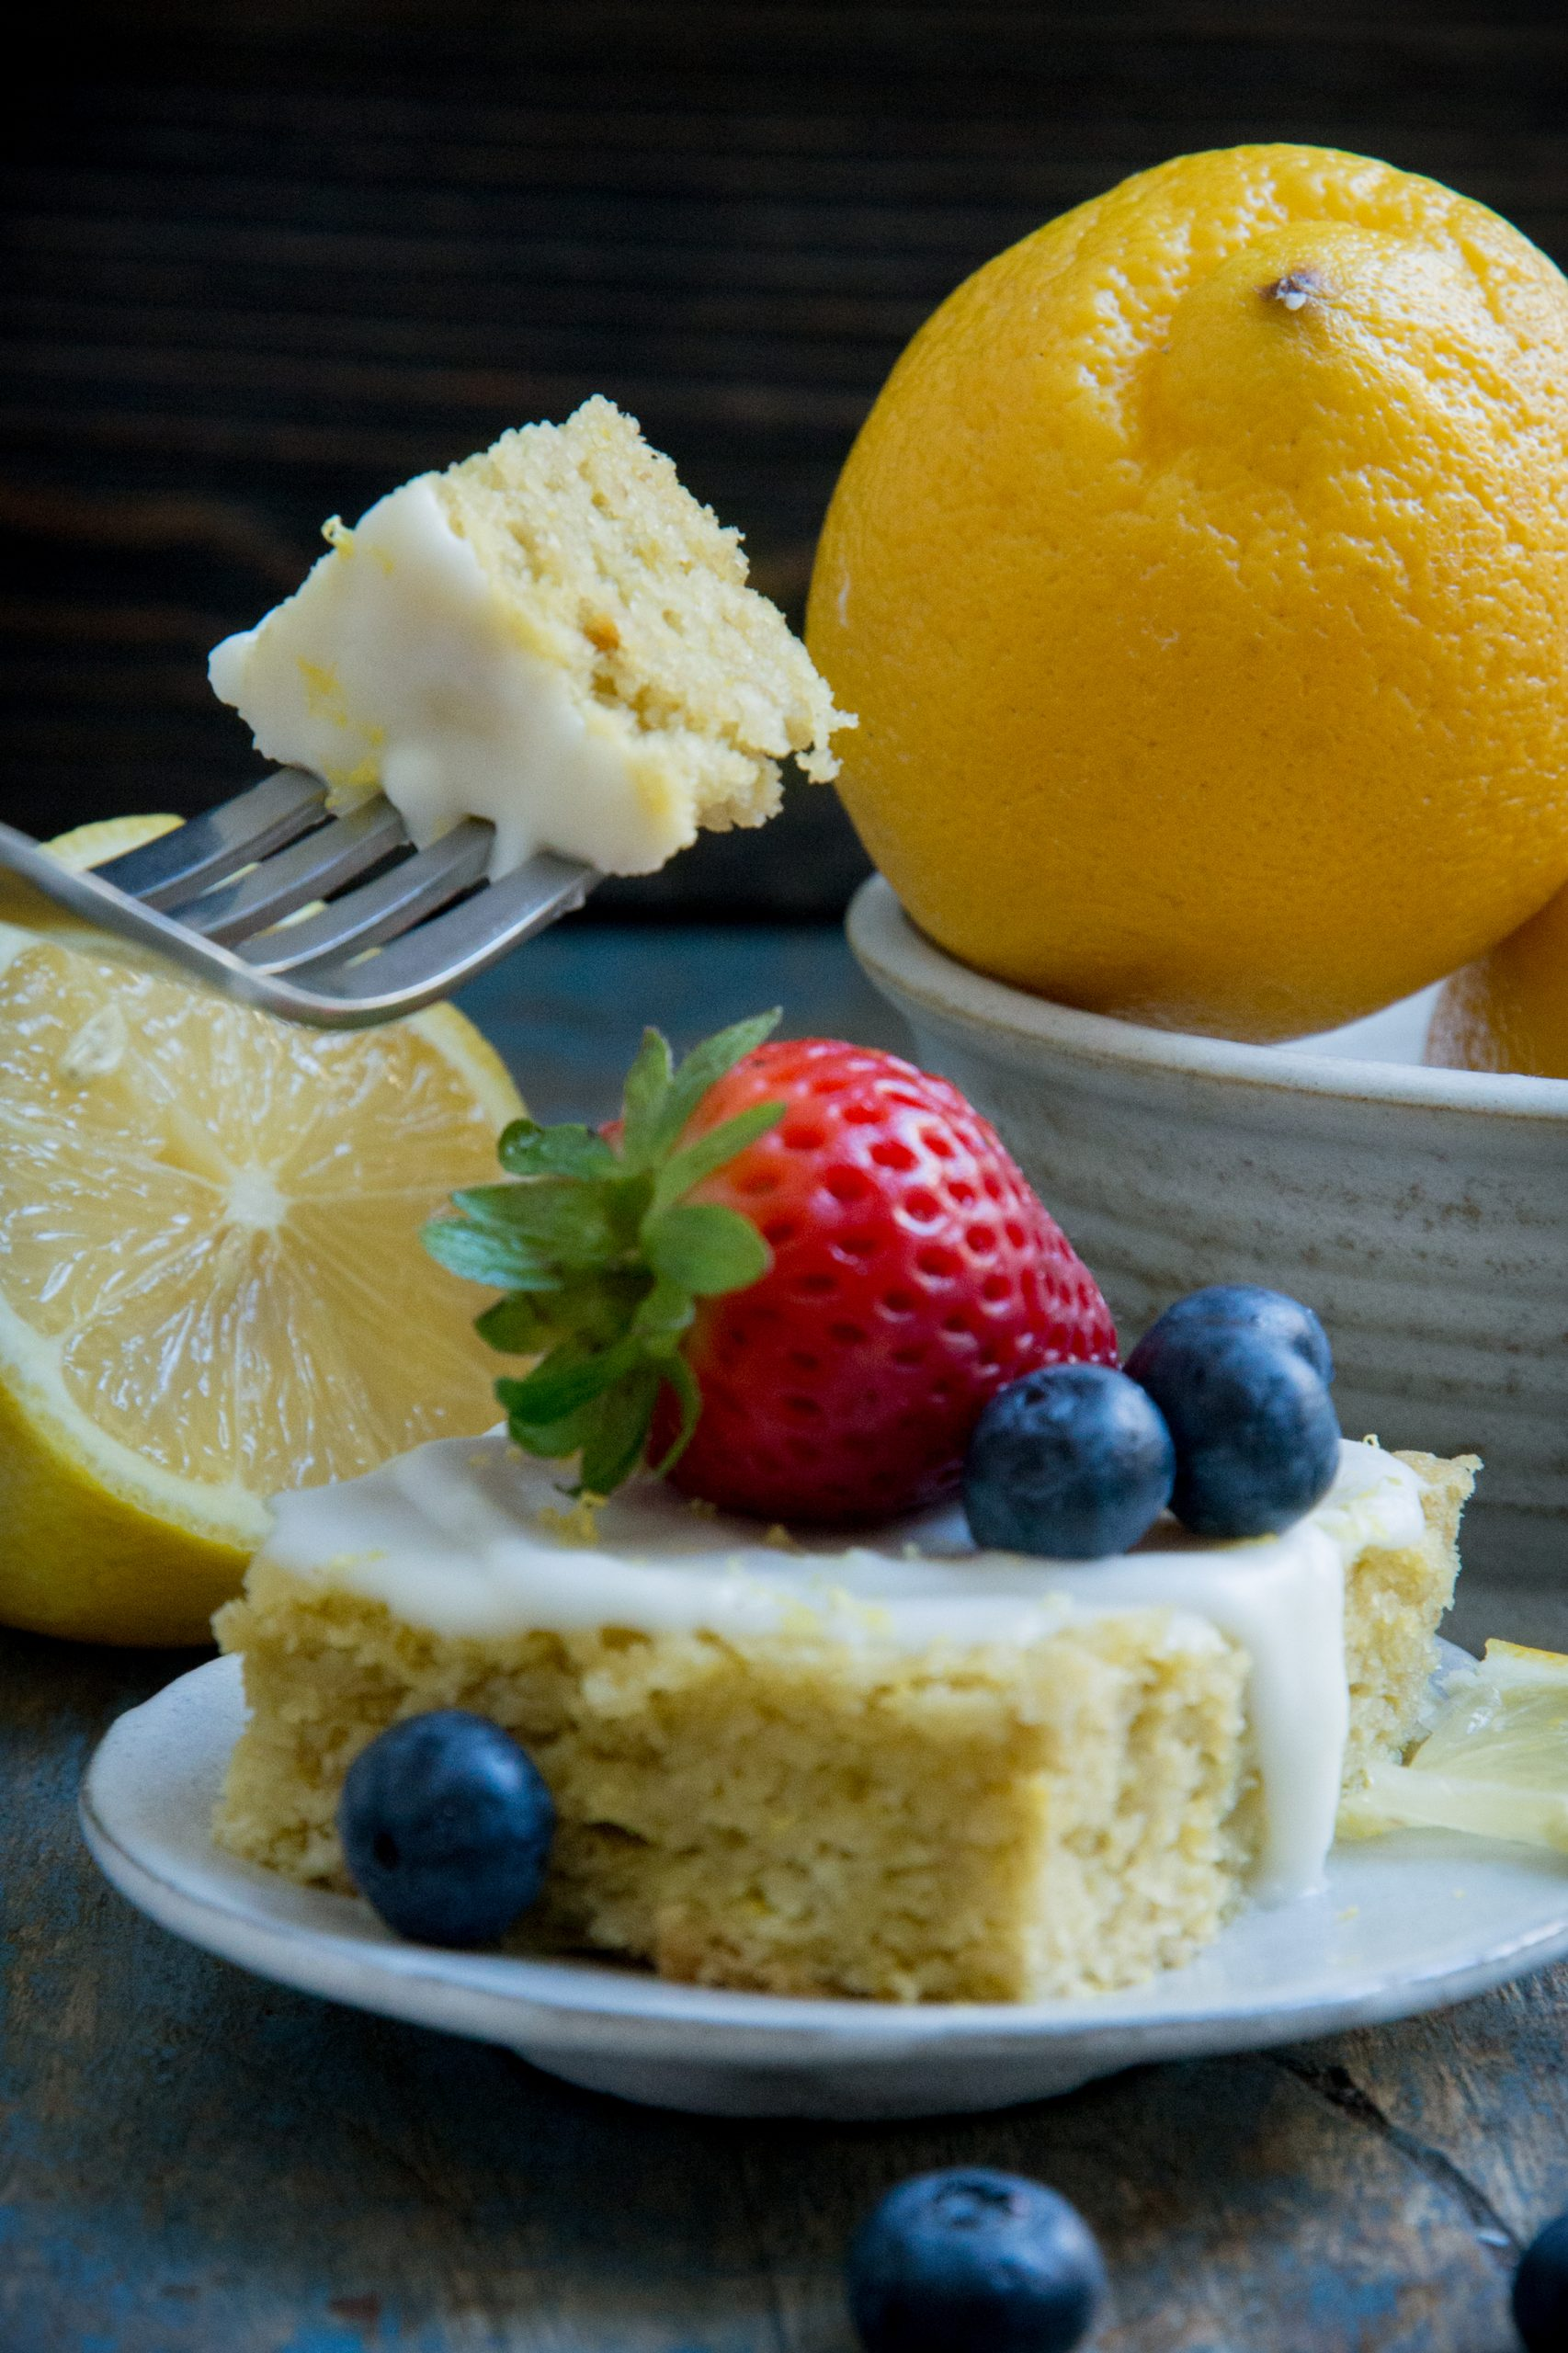 Taking a bite of the low-carb lemon cake.